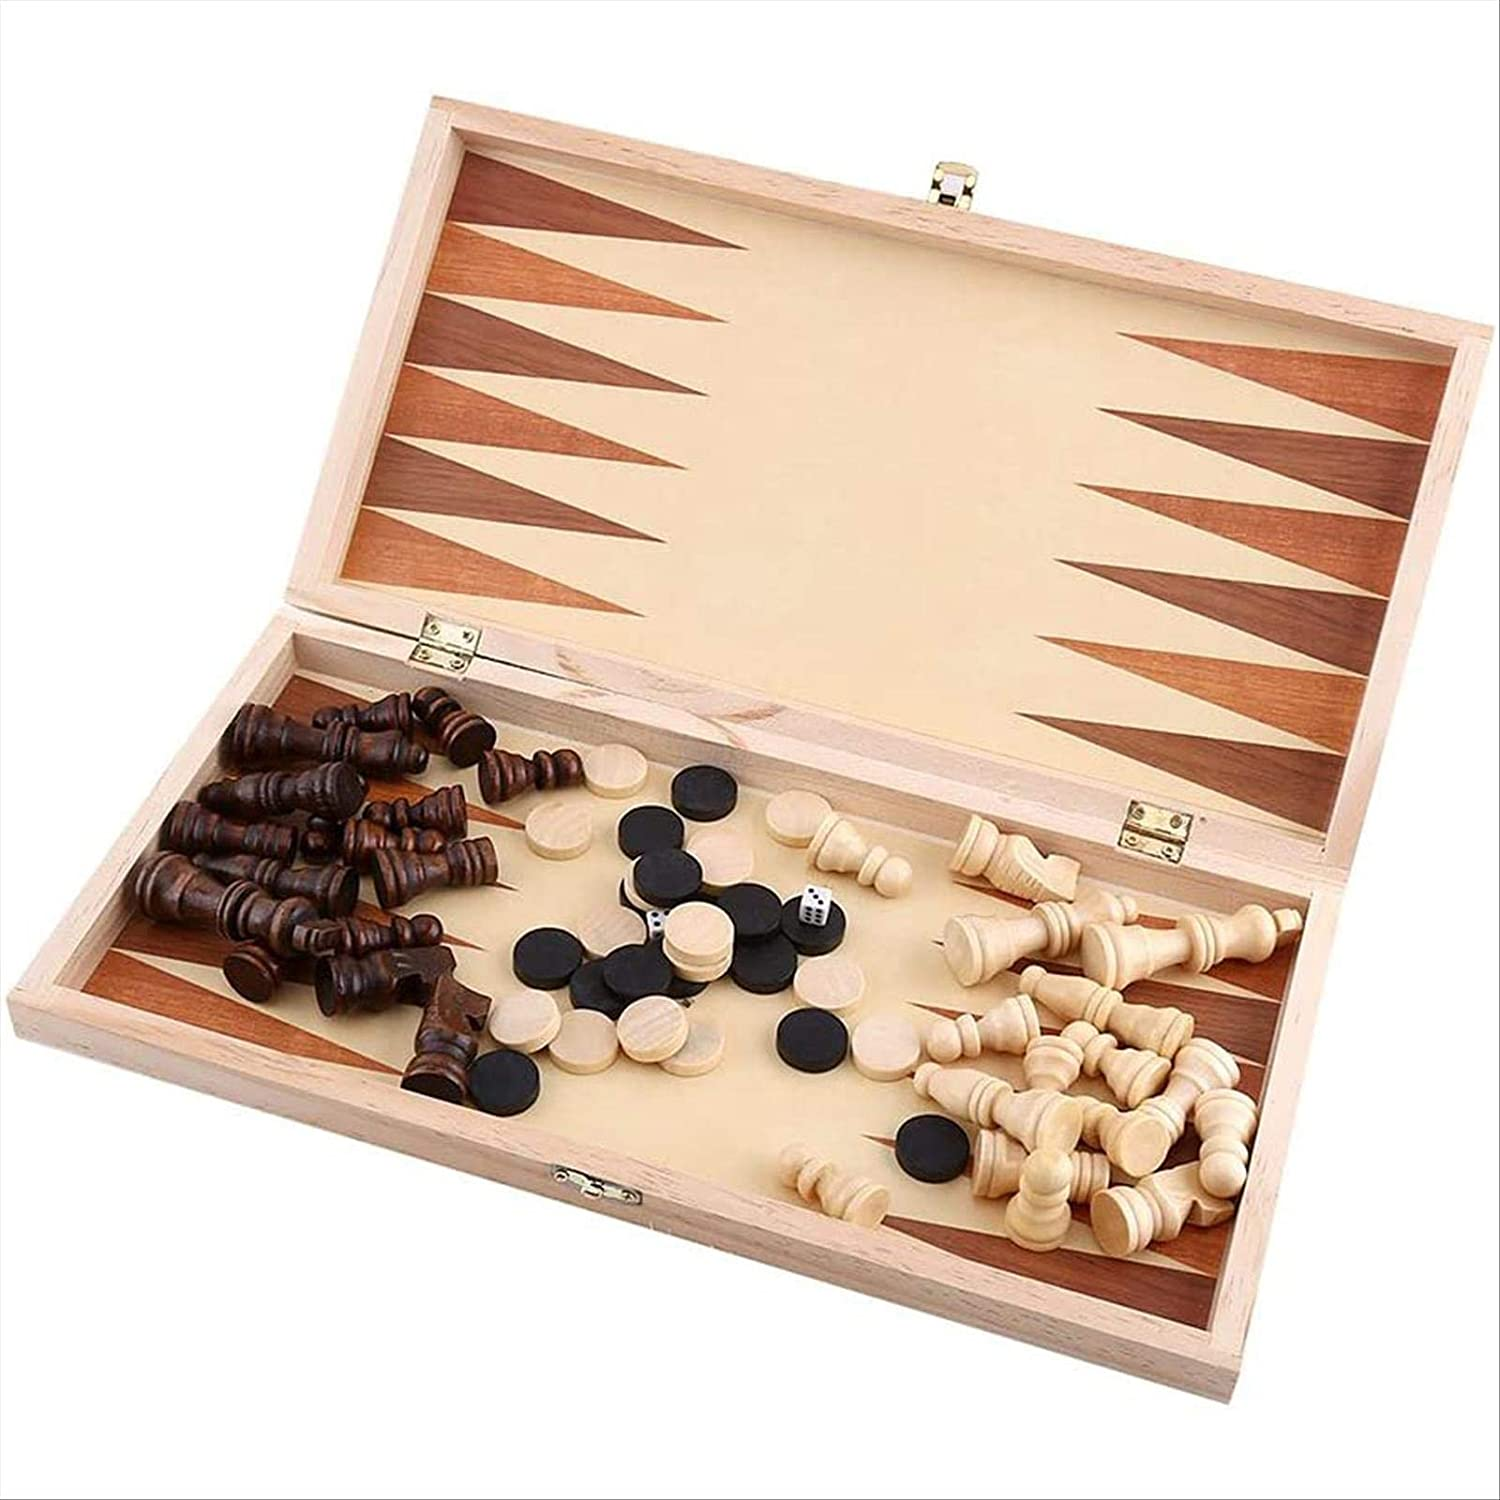 2021new shipping free ZJYZJQ NEW before selling Portable Wooden Chess Folding Set Board